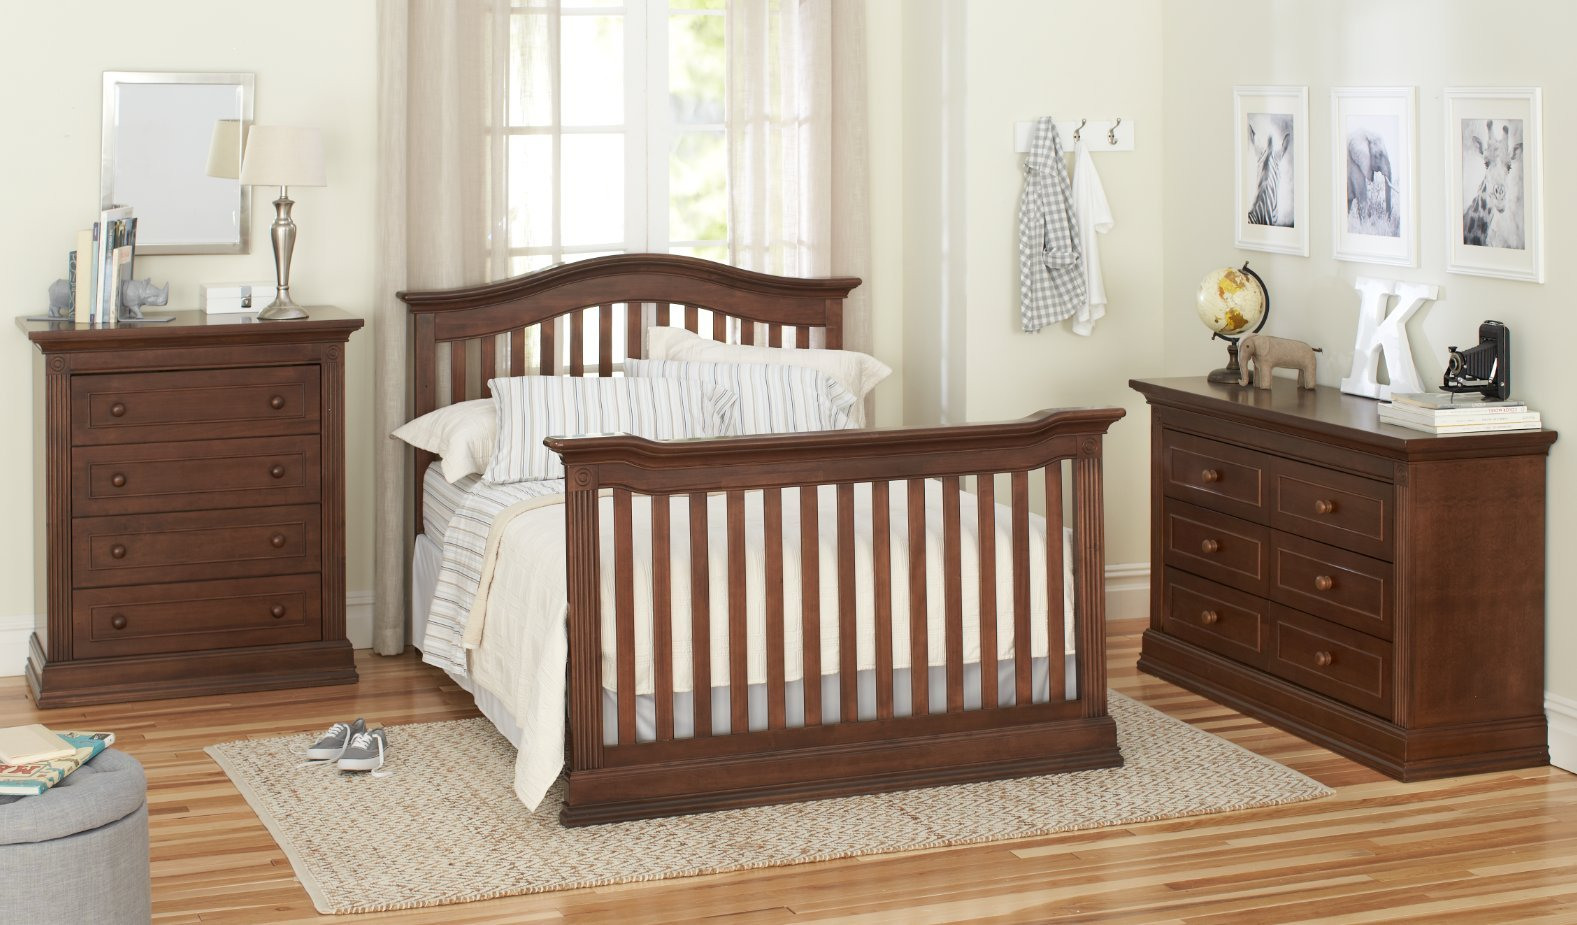 Baby Cache Montana Collection Crib Conversion Kit, Brown Sugar by Baby Cache (Image #6)